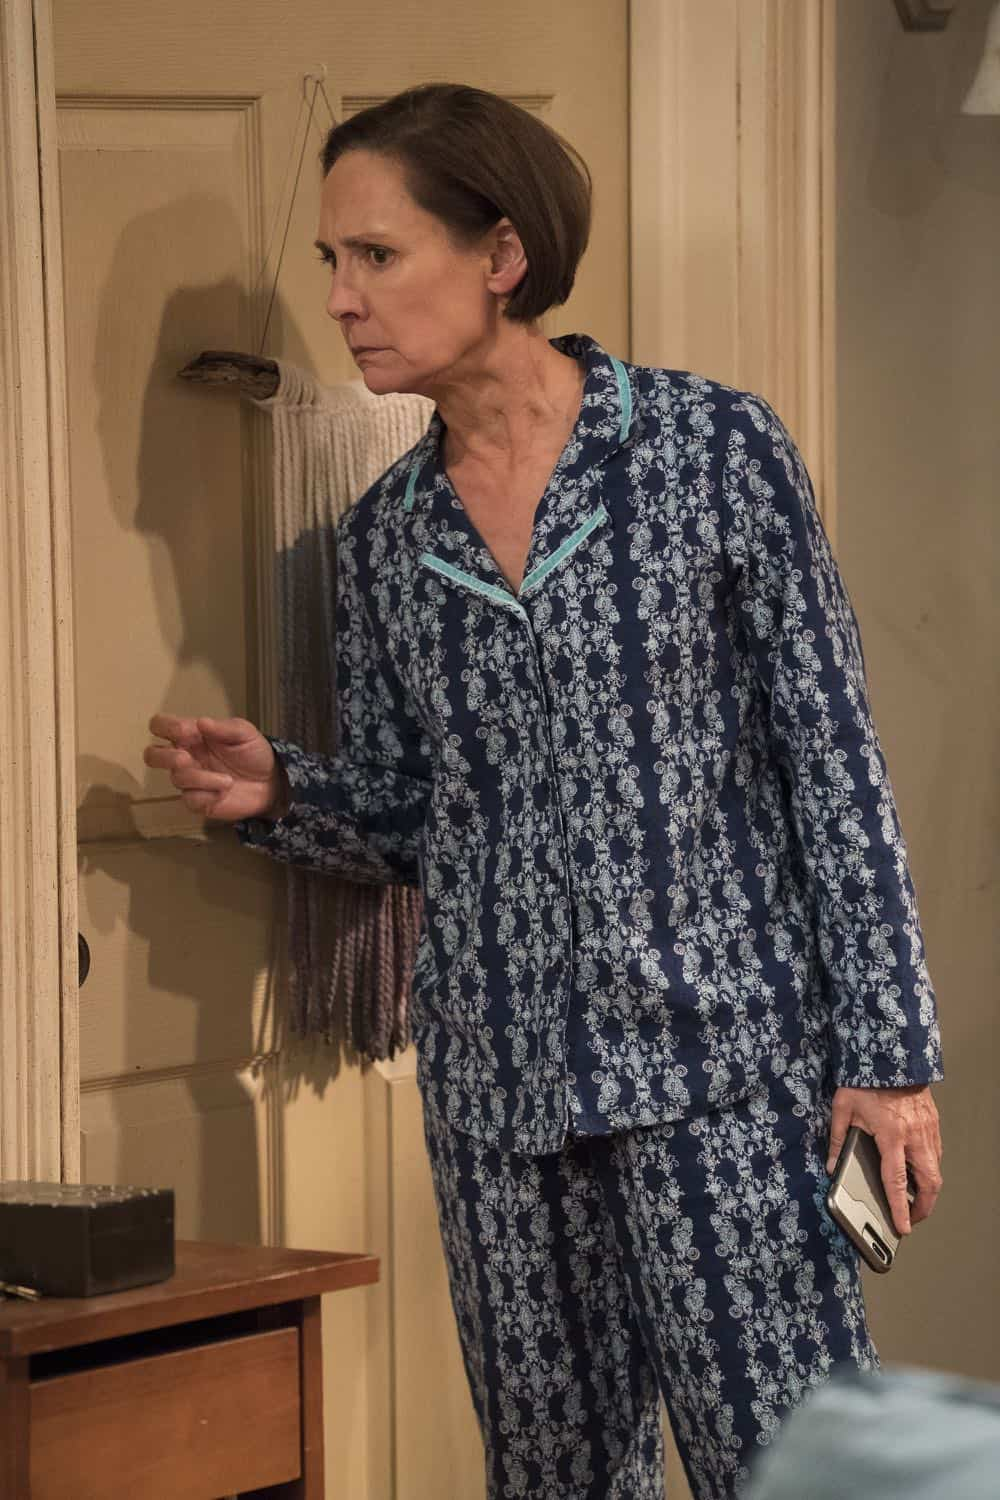 Roseanne Episode 6 Season 10 No Country for Old Women 19